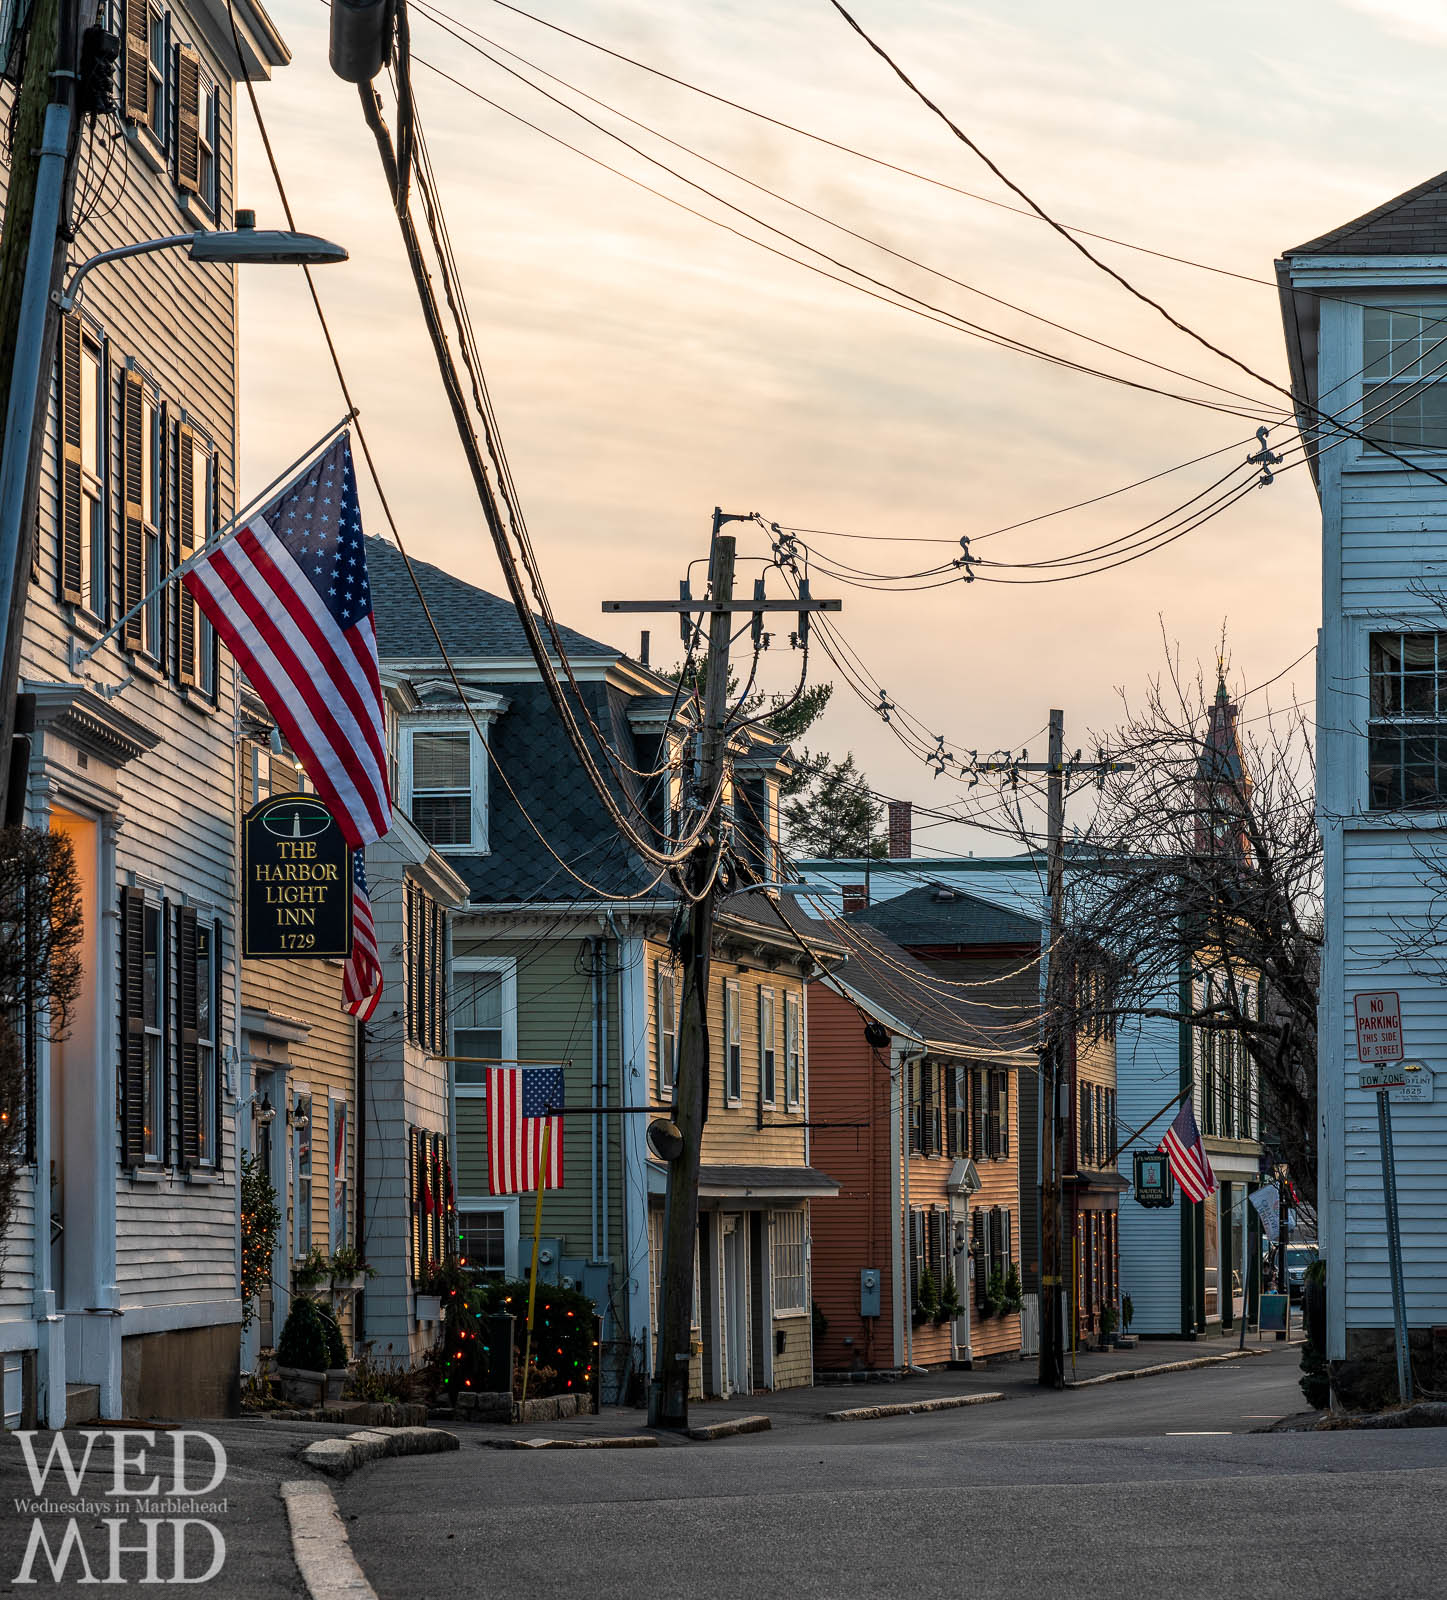 Four flags decorate homes and businesses along Washington Street as the sun sets on an early December evening in Marblehead